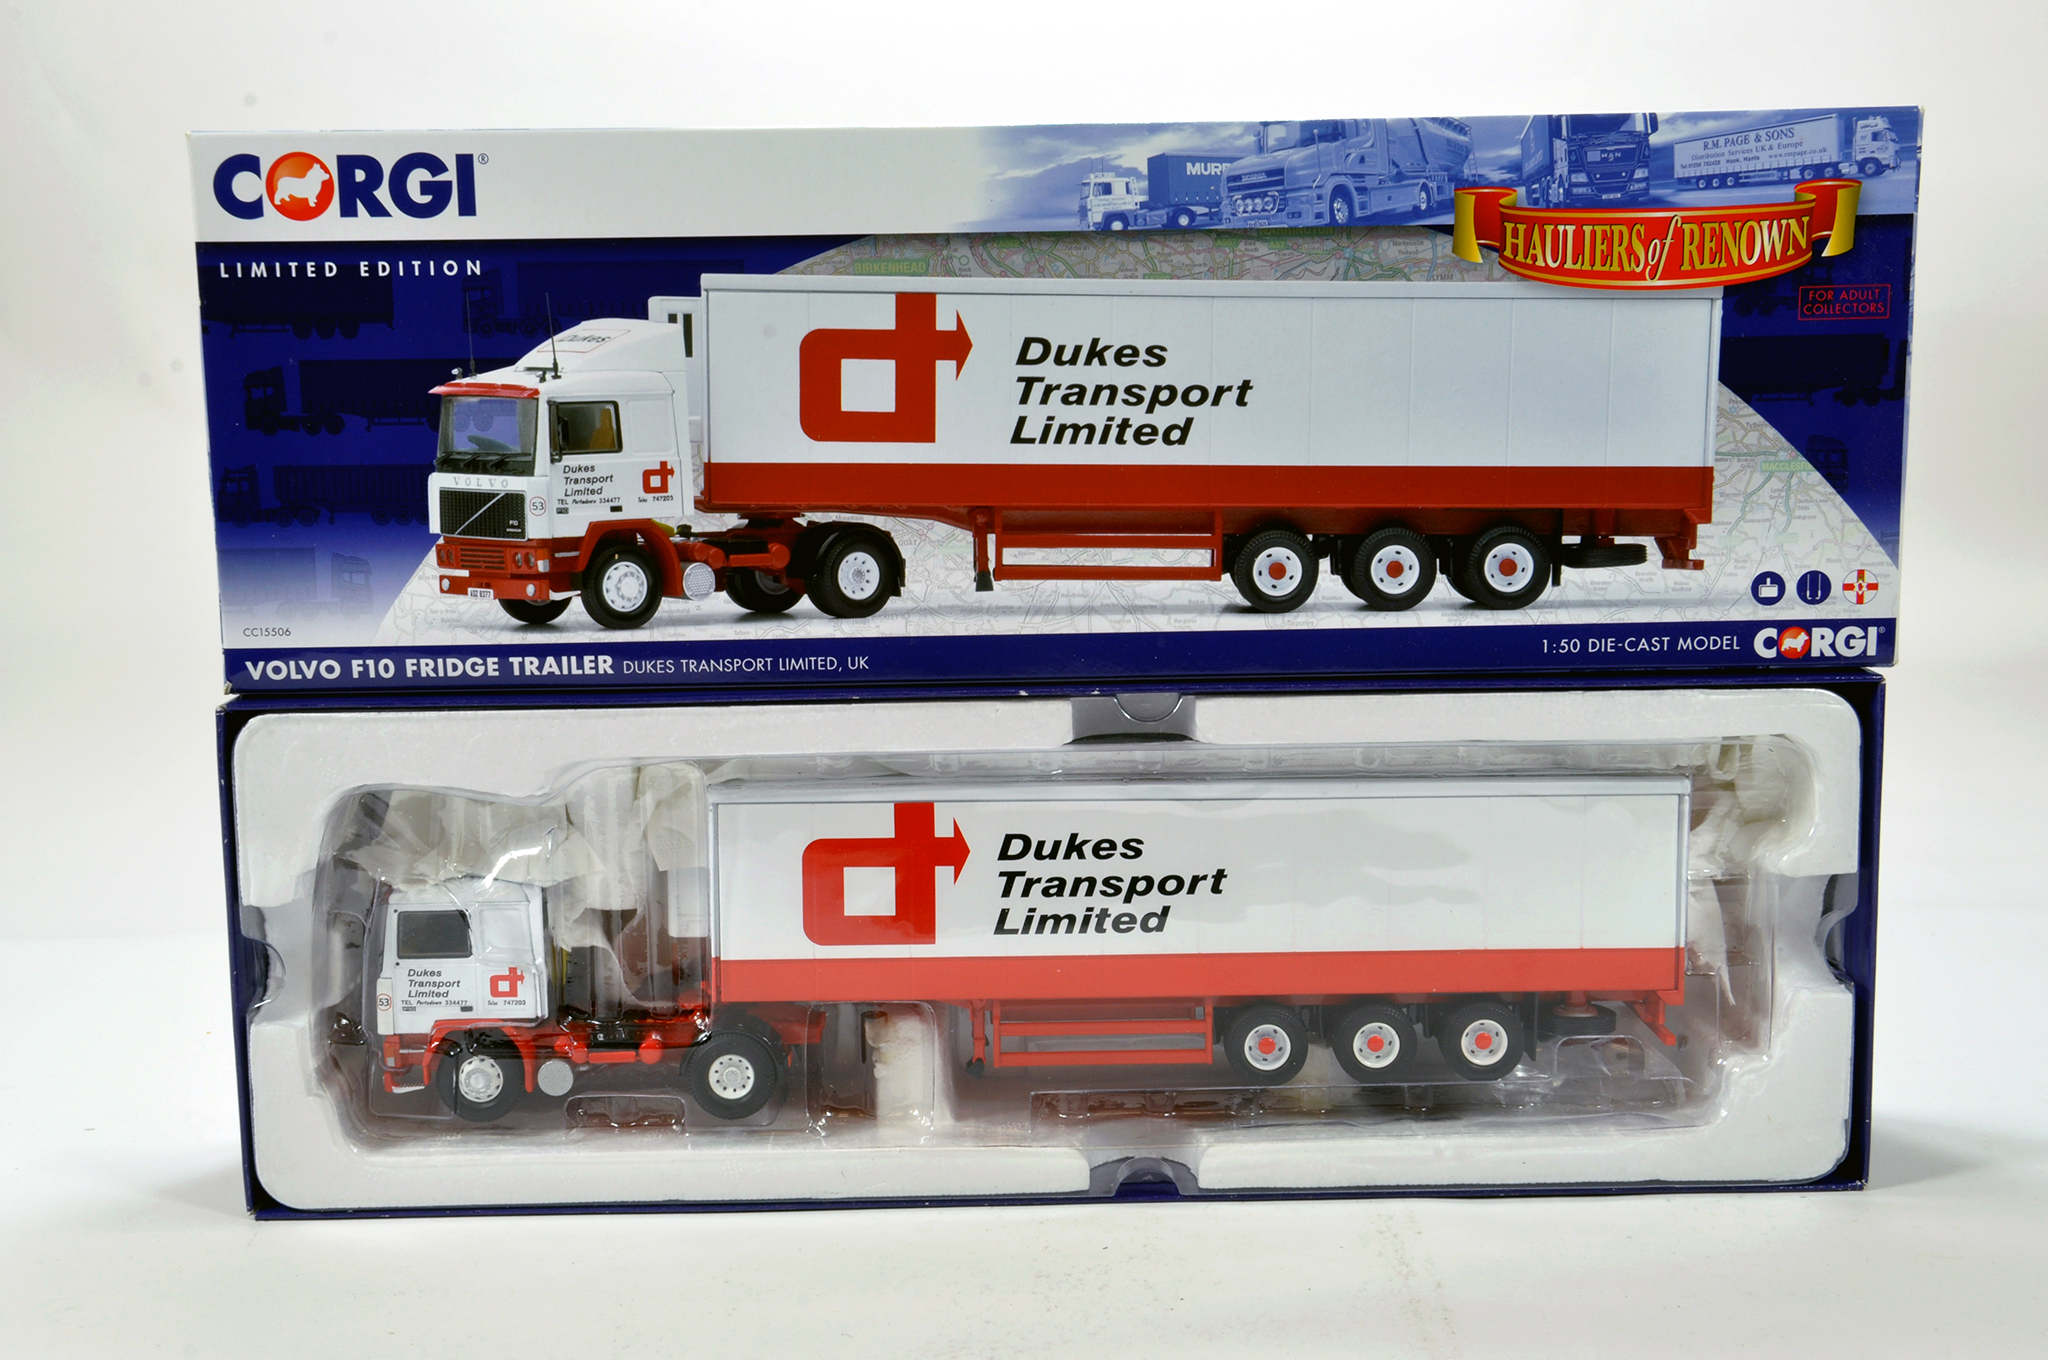 Lot 44 - Corgi 1/50 diecast truck issue comprising No. CC15506 Volvo F10 Fridge Trailer in livery of Dukes